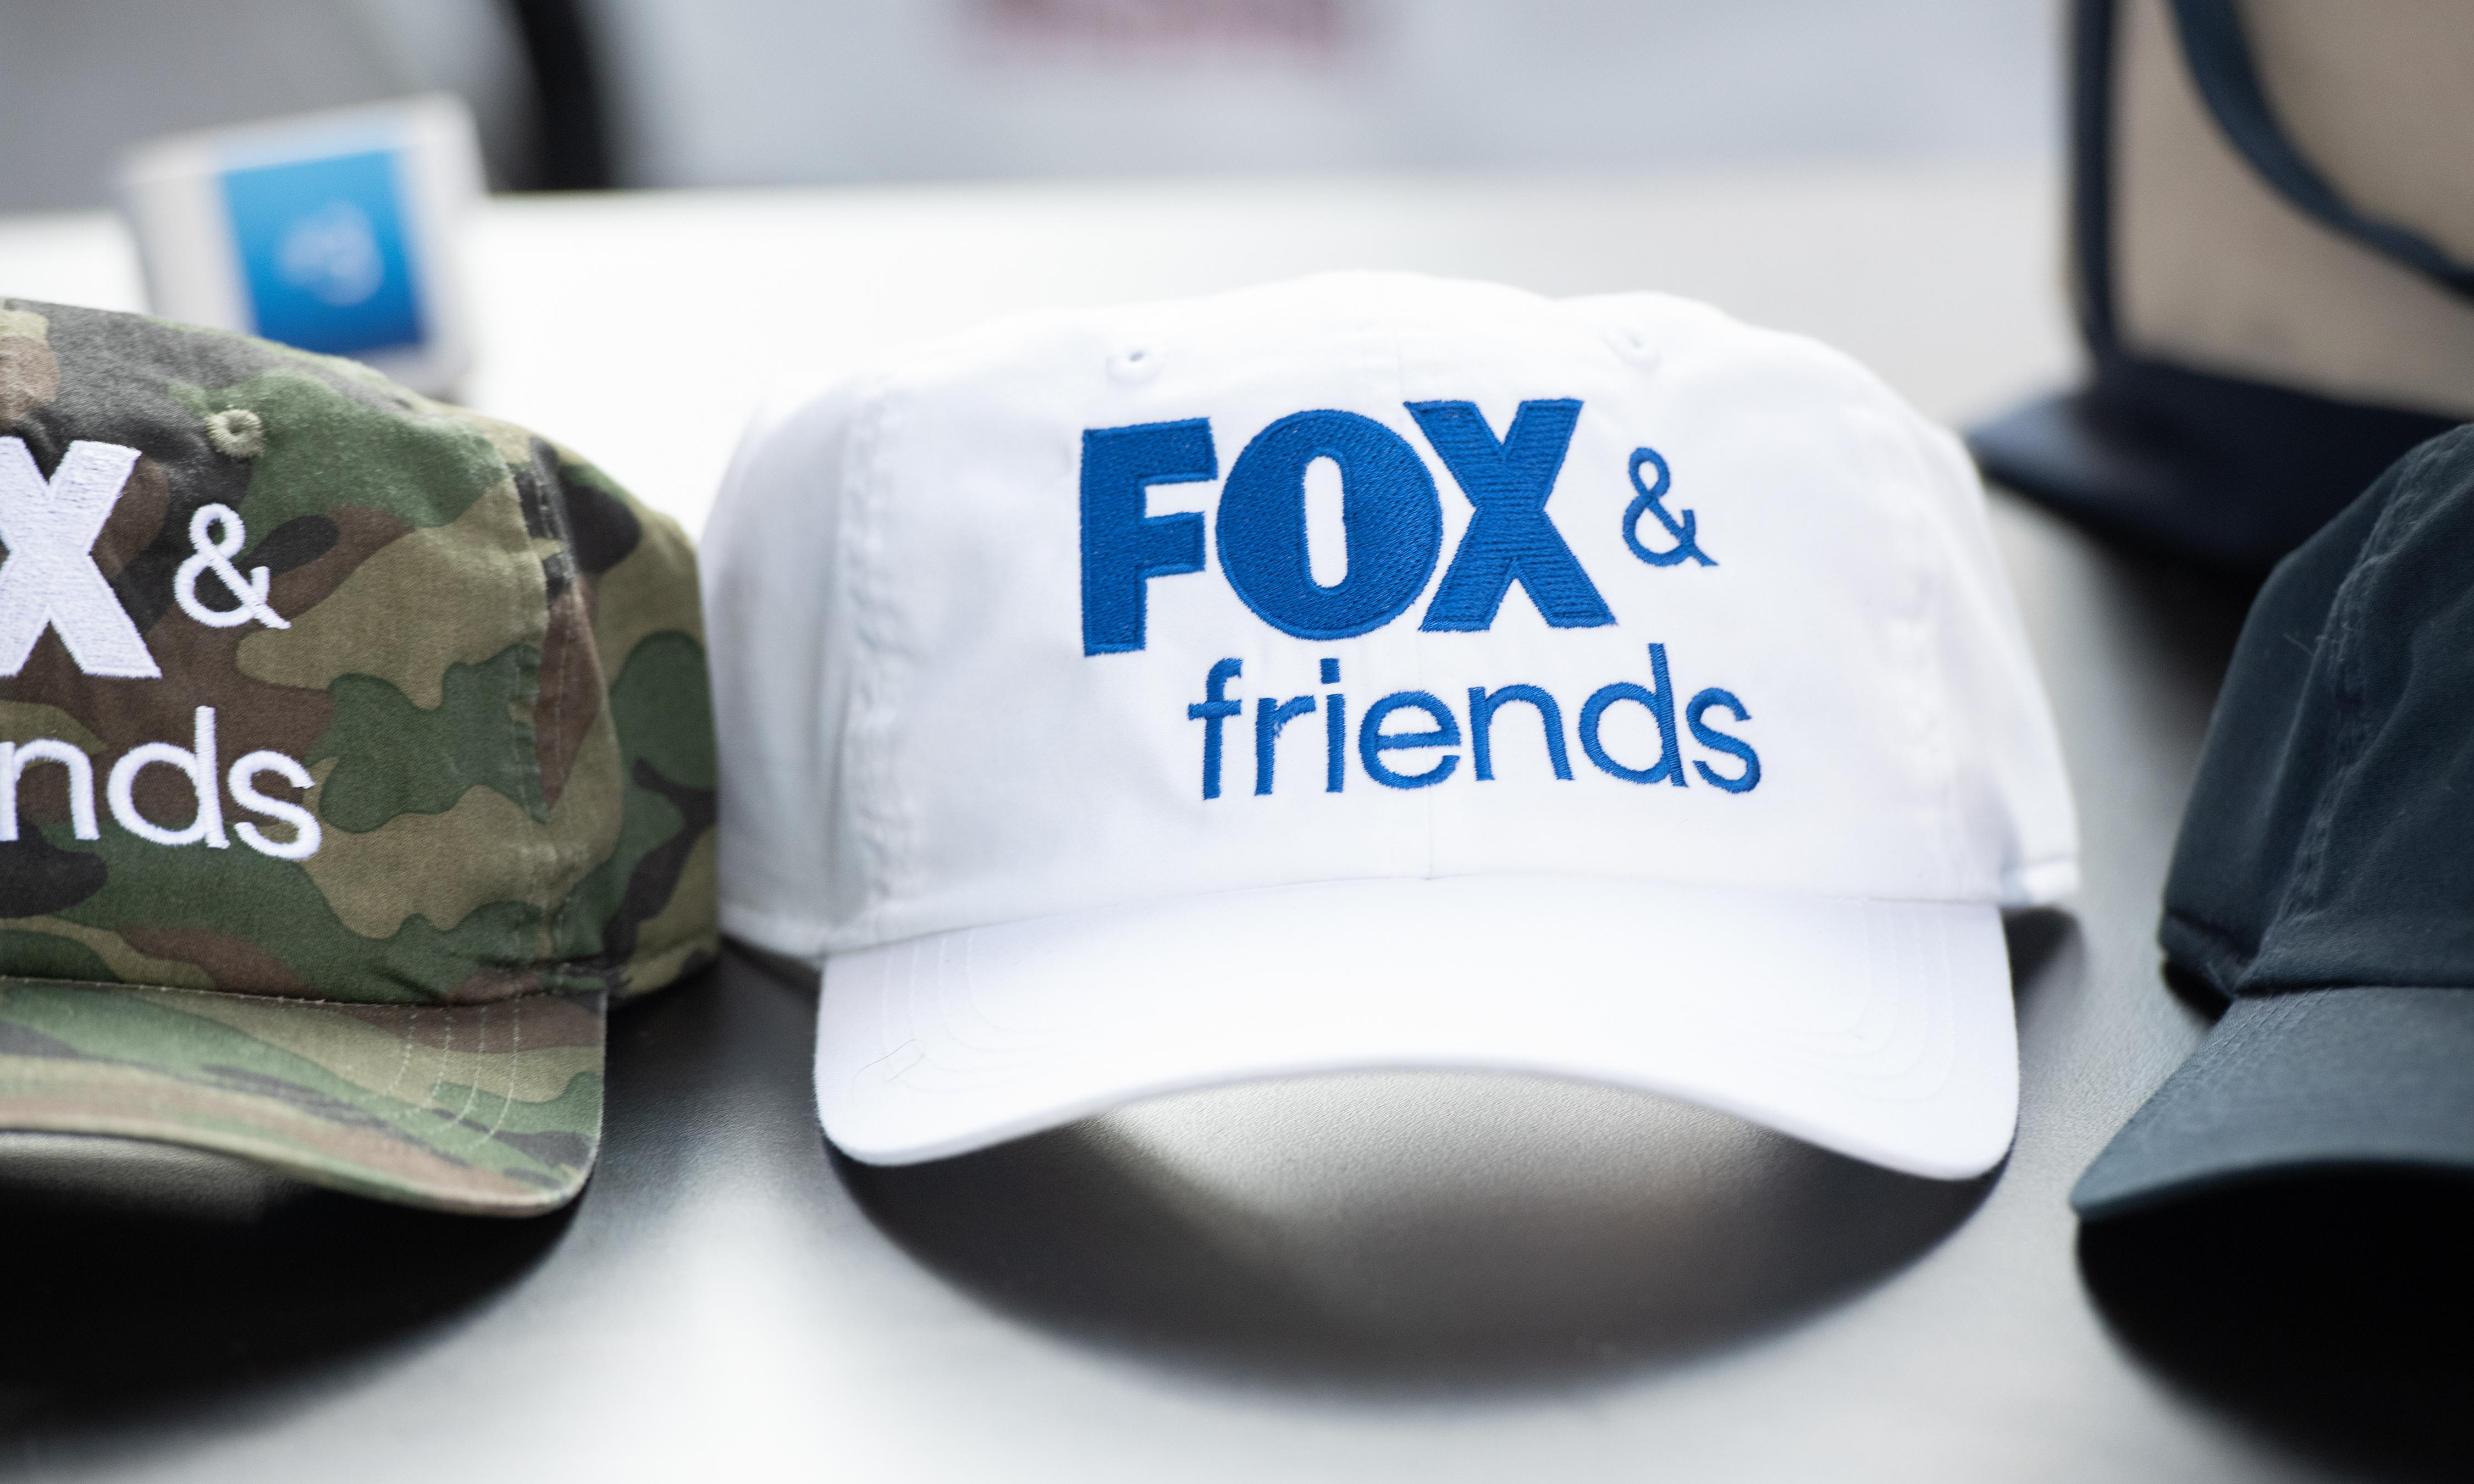 I watched Fox News every day for 44 months – here's what I learned